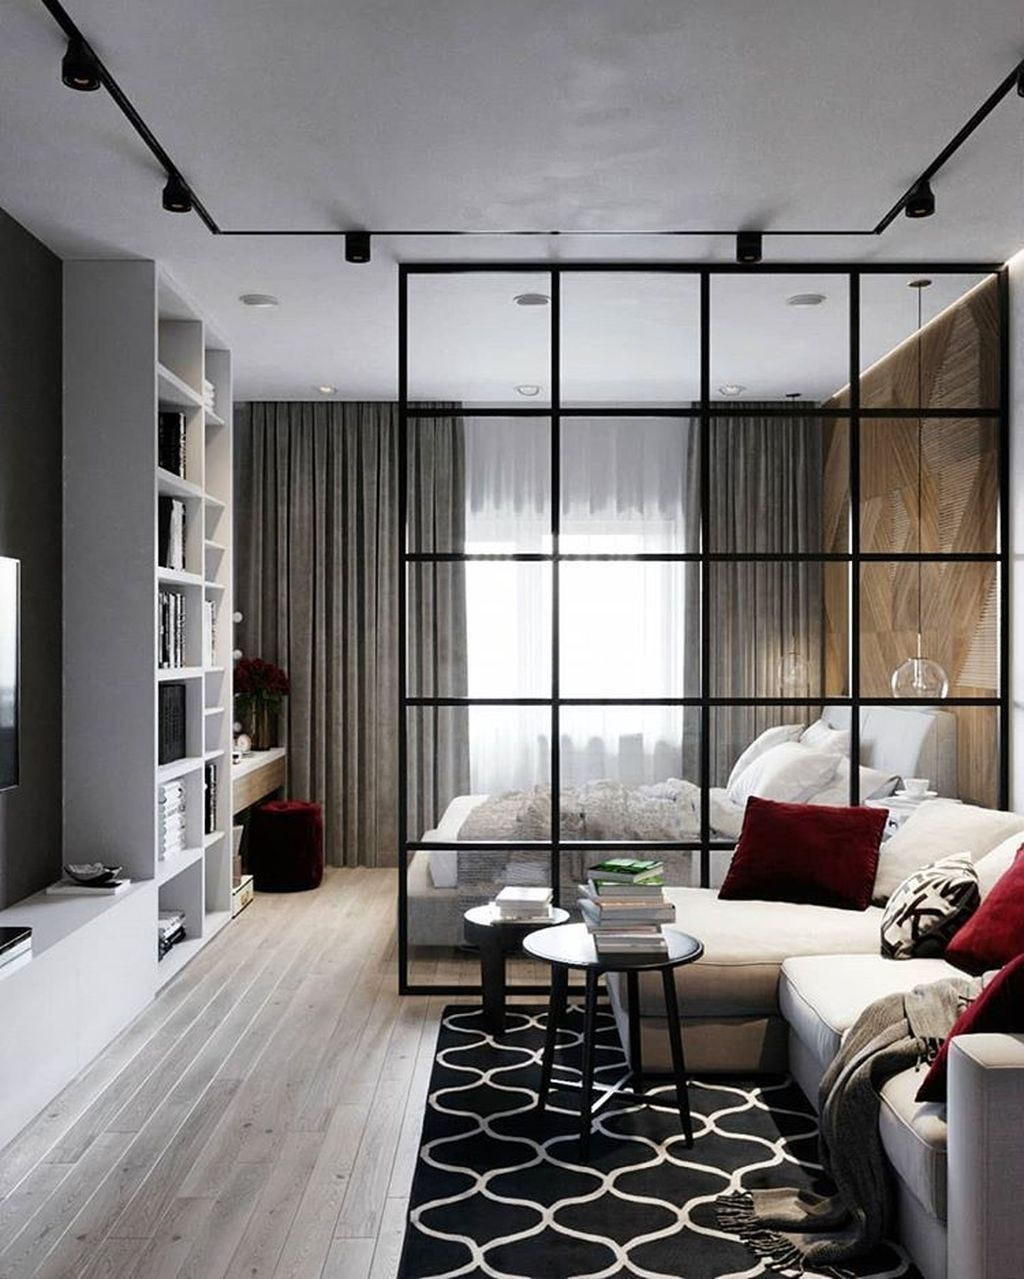 31 Awesome Studio Apartment Ideas For Your Inspiration In 2020 Small Apartment Interior Apartment Room Apartment Interior